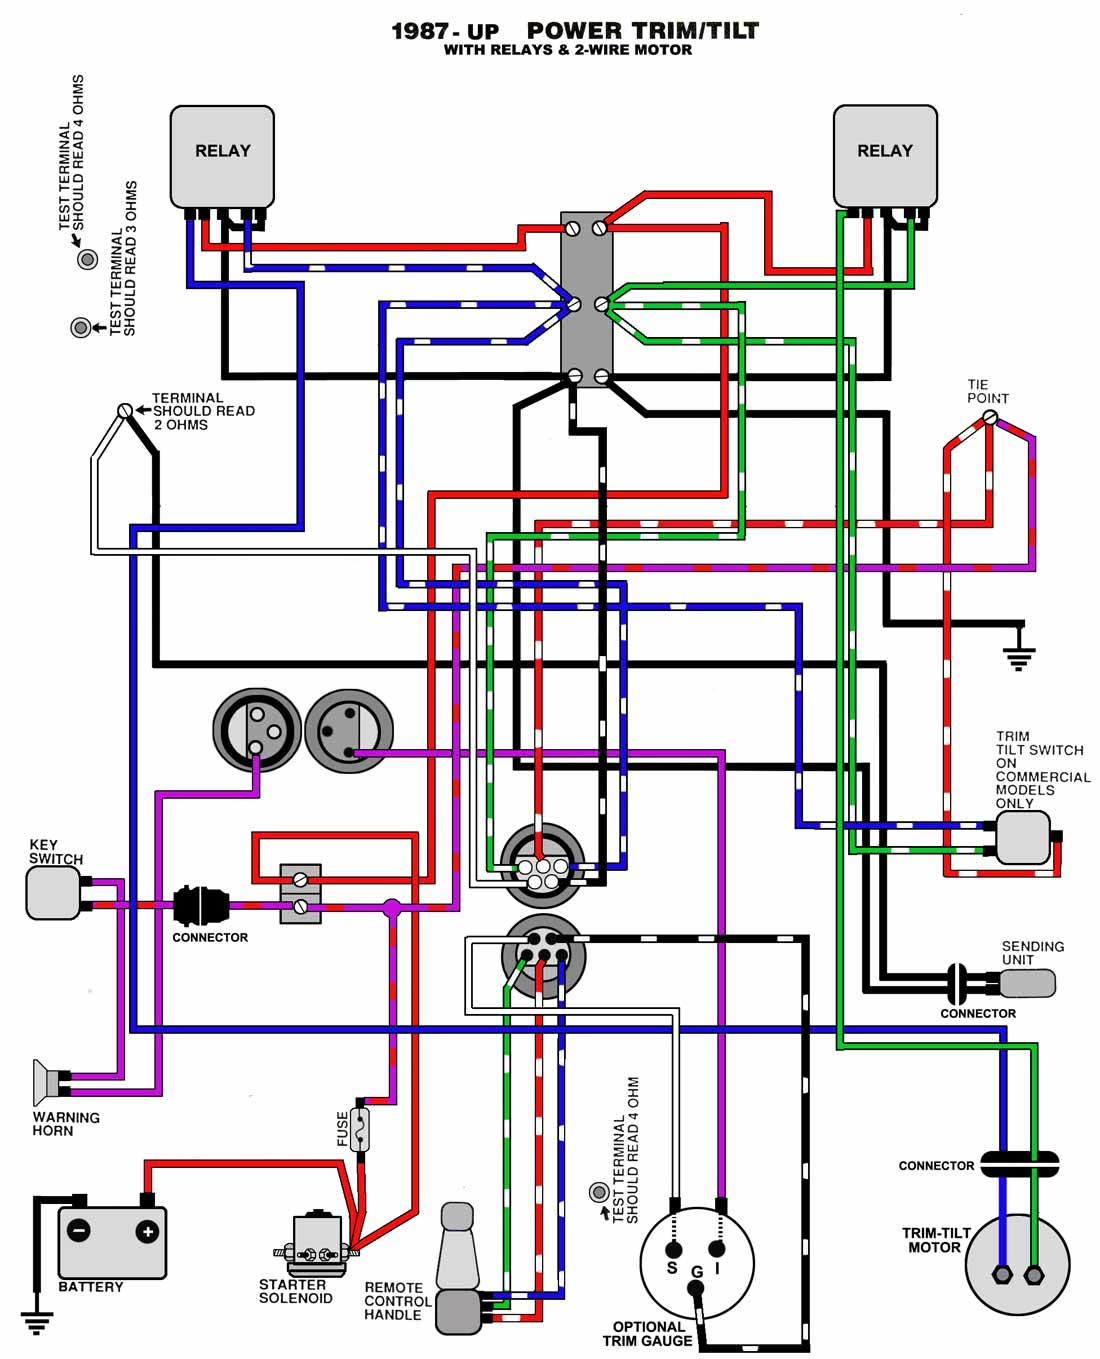 TnT_87_UP mastertech marine evinrude johnson outboard wiring diagrams evinrude key switch wiring diagram at gsmportal.co